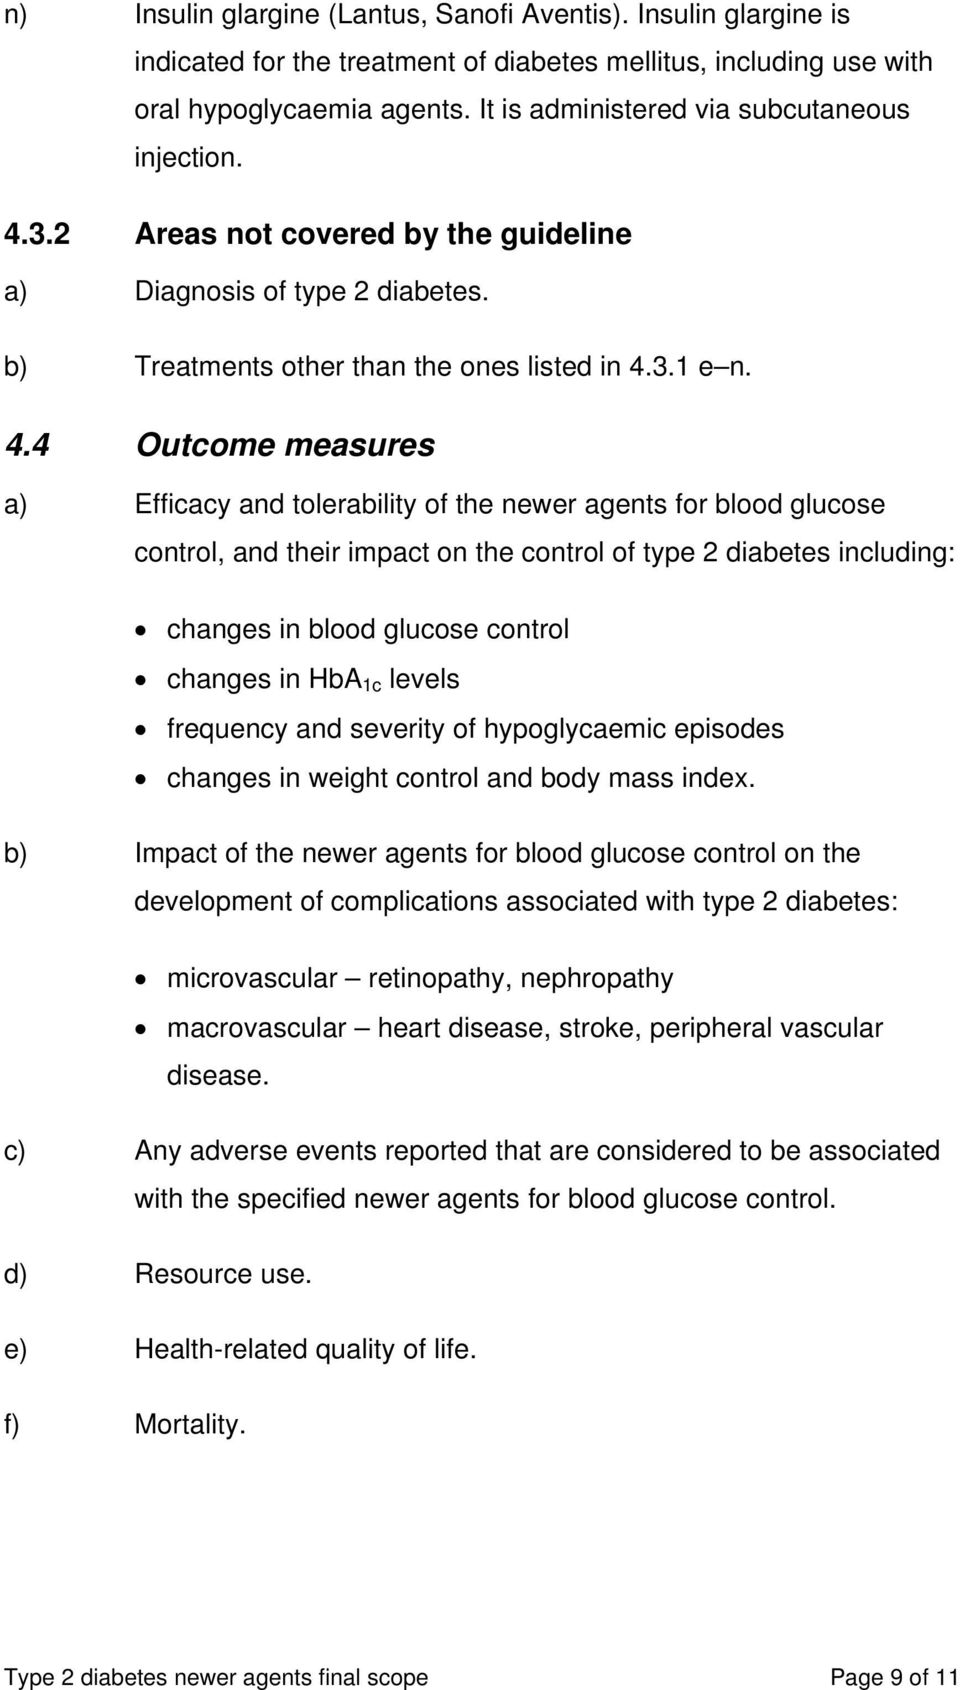 3.2 Areas not covered by the guideline a) Diagnosis of type 2 diabetes. b) Treatments other than the ones listed in 4.